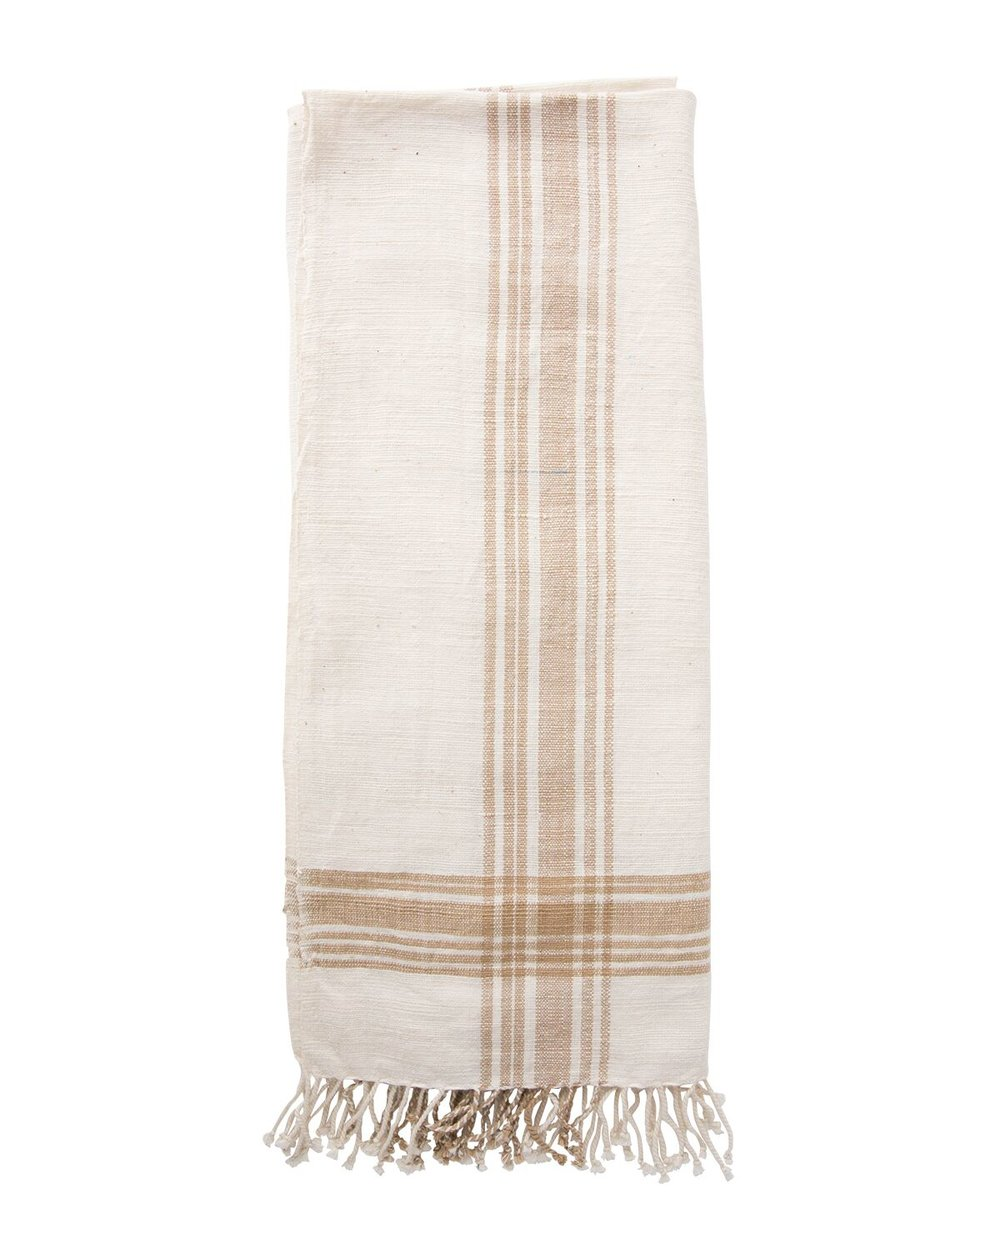 Hyde Hatch Hand Towel 1_preview.jpg